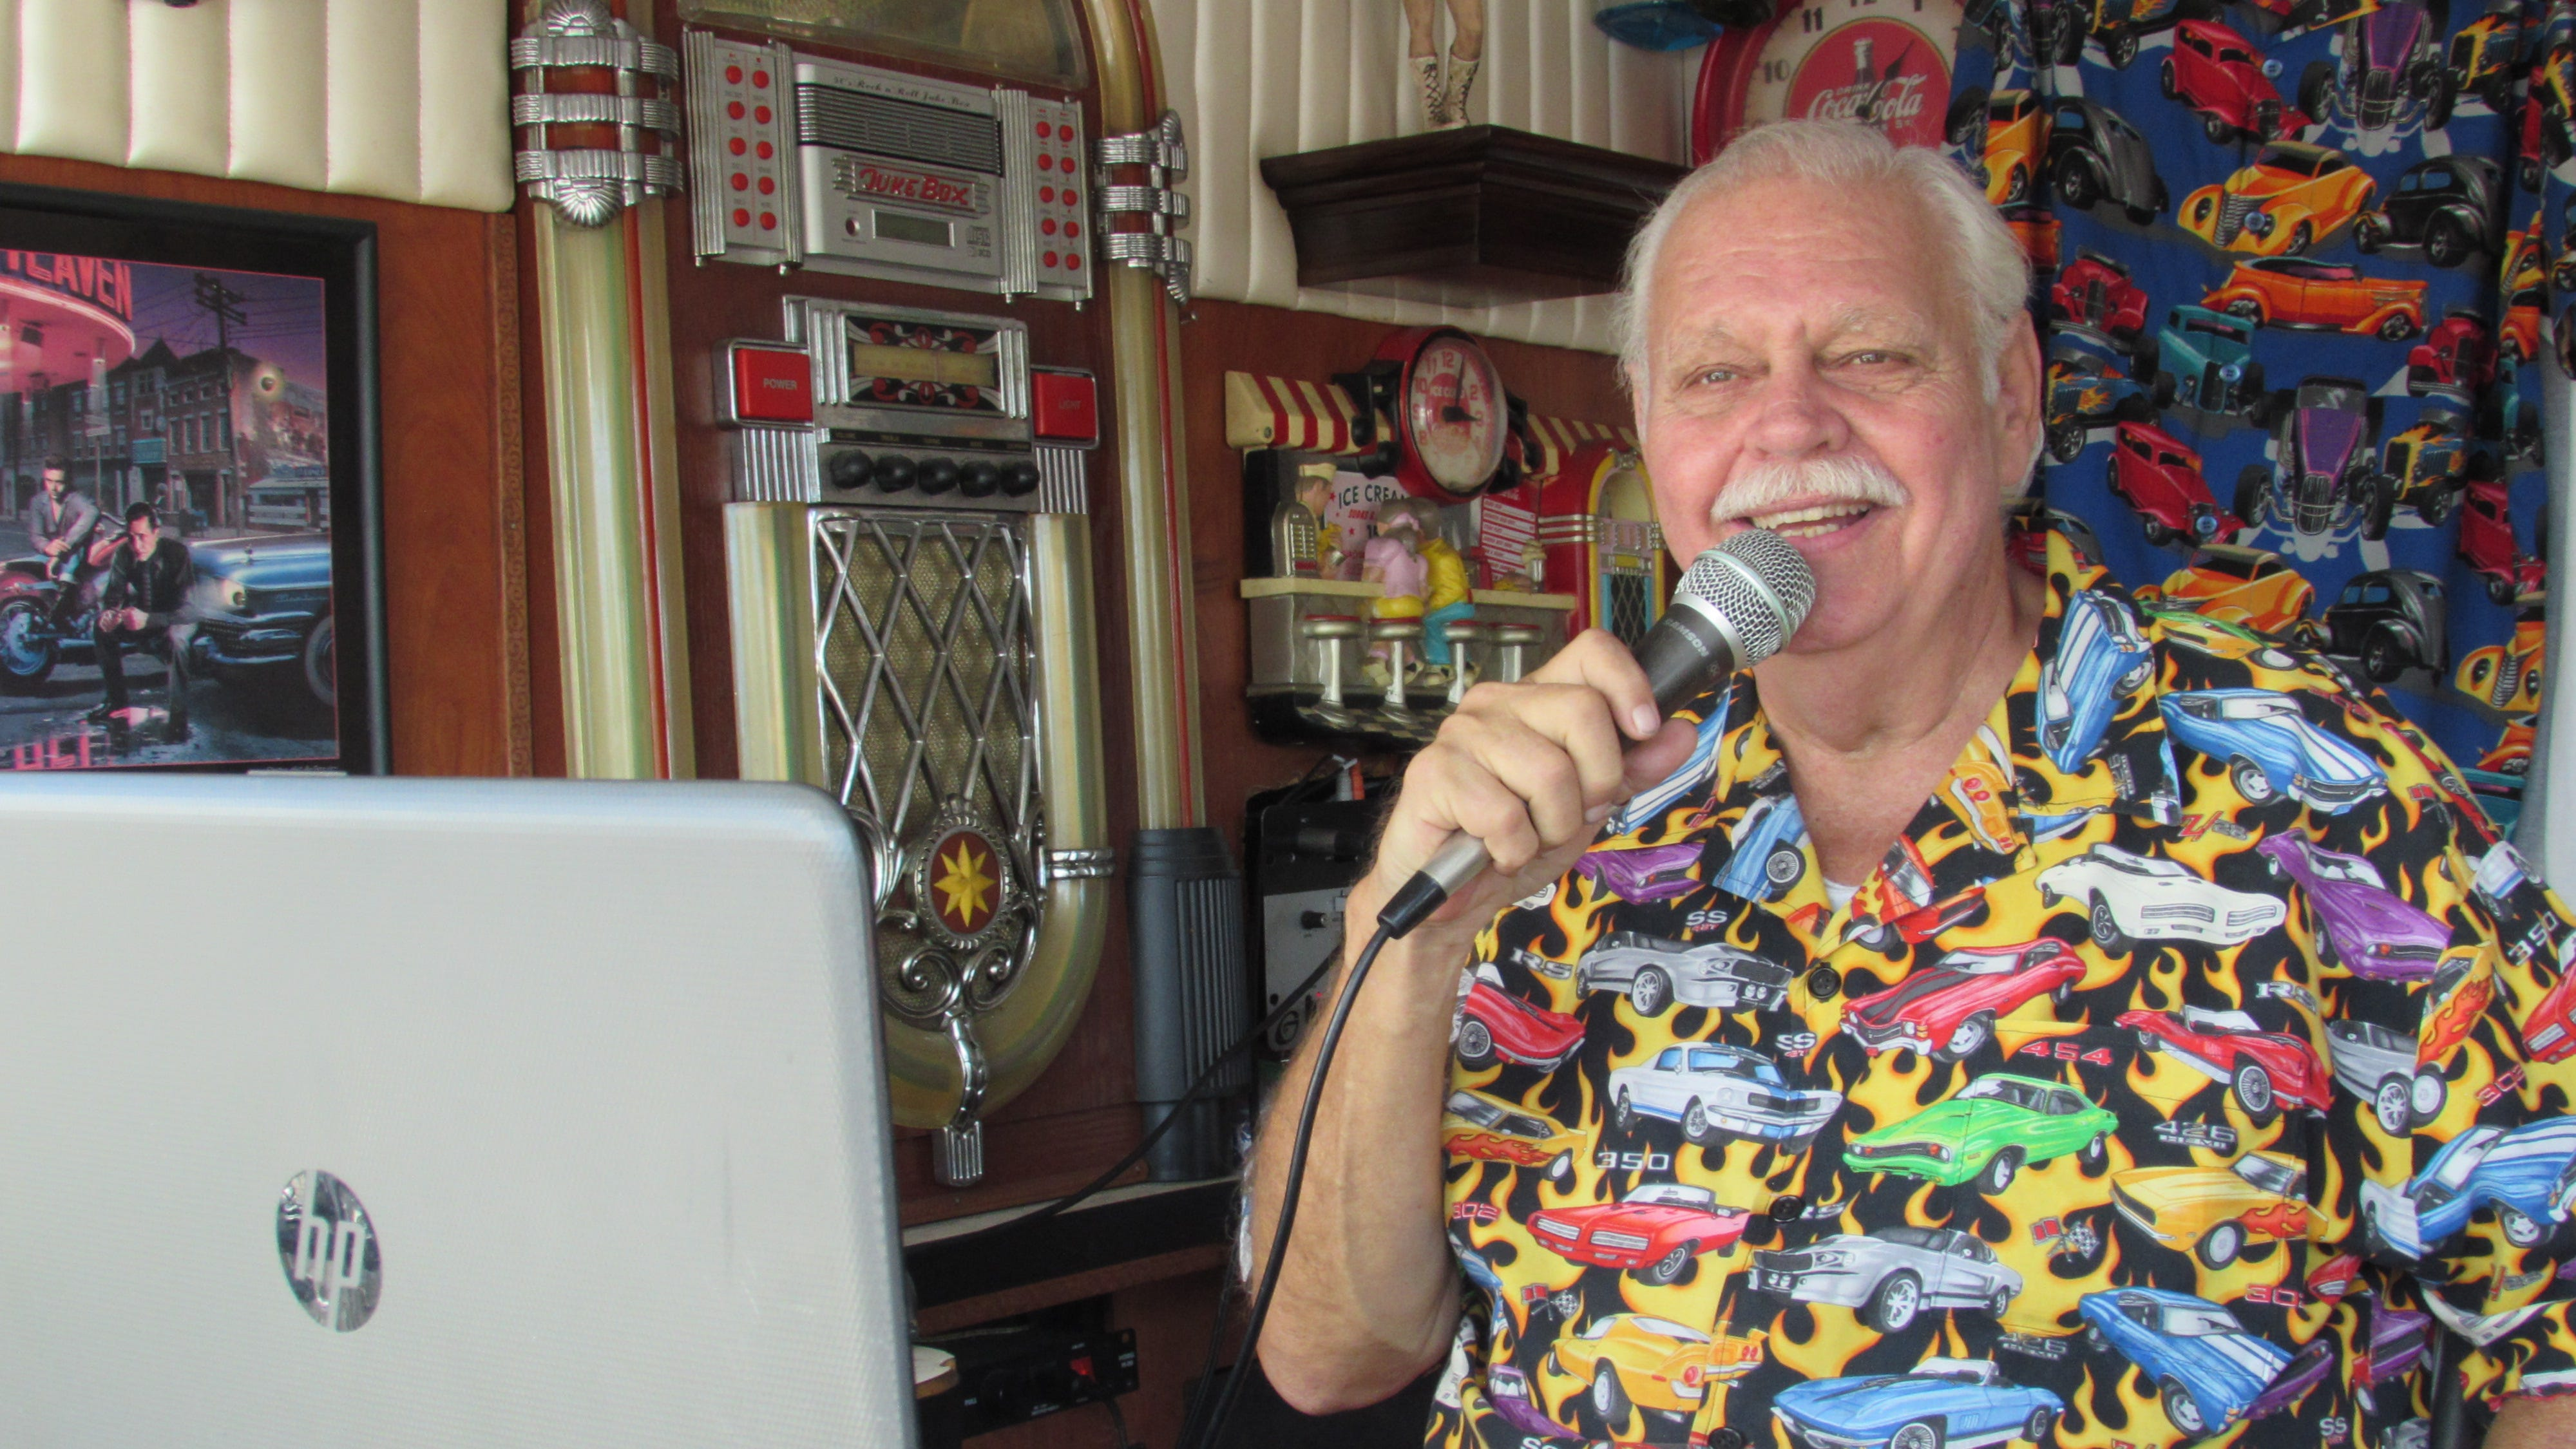 Lance Hubschmitt, popular D.J. and owner of Lance's Cruzin to the Hop, emcees an auto show. He's been bringing classic autos to the people of Southwest Florida for decades.